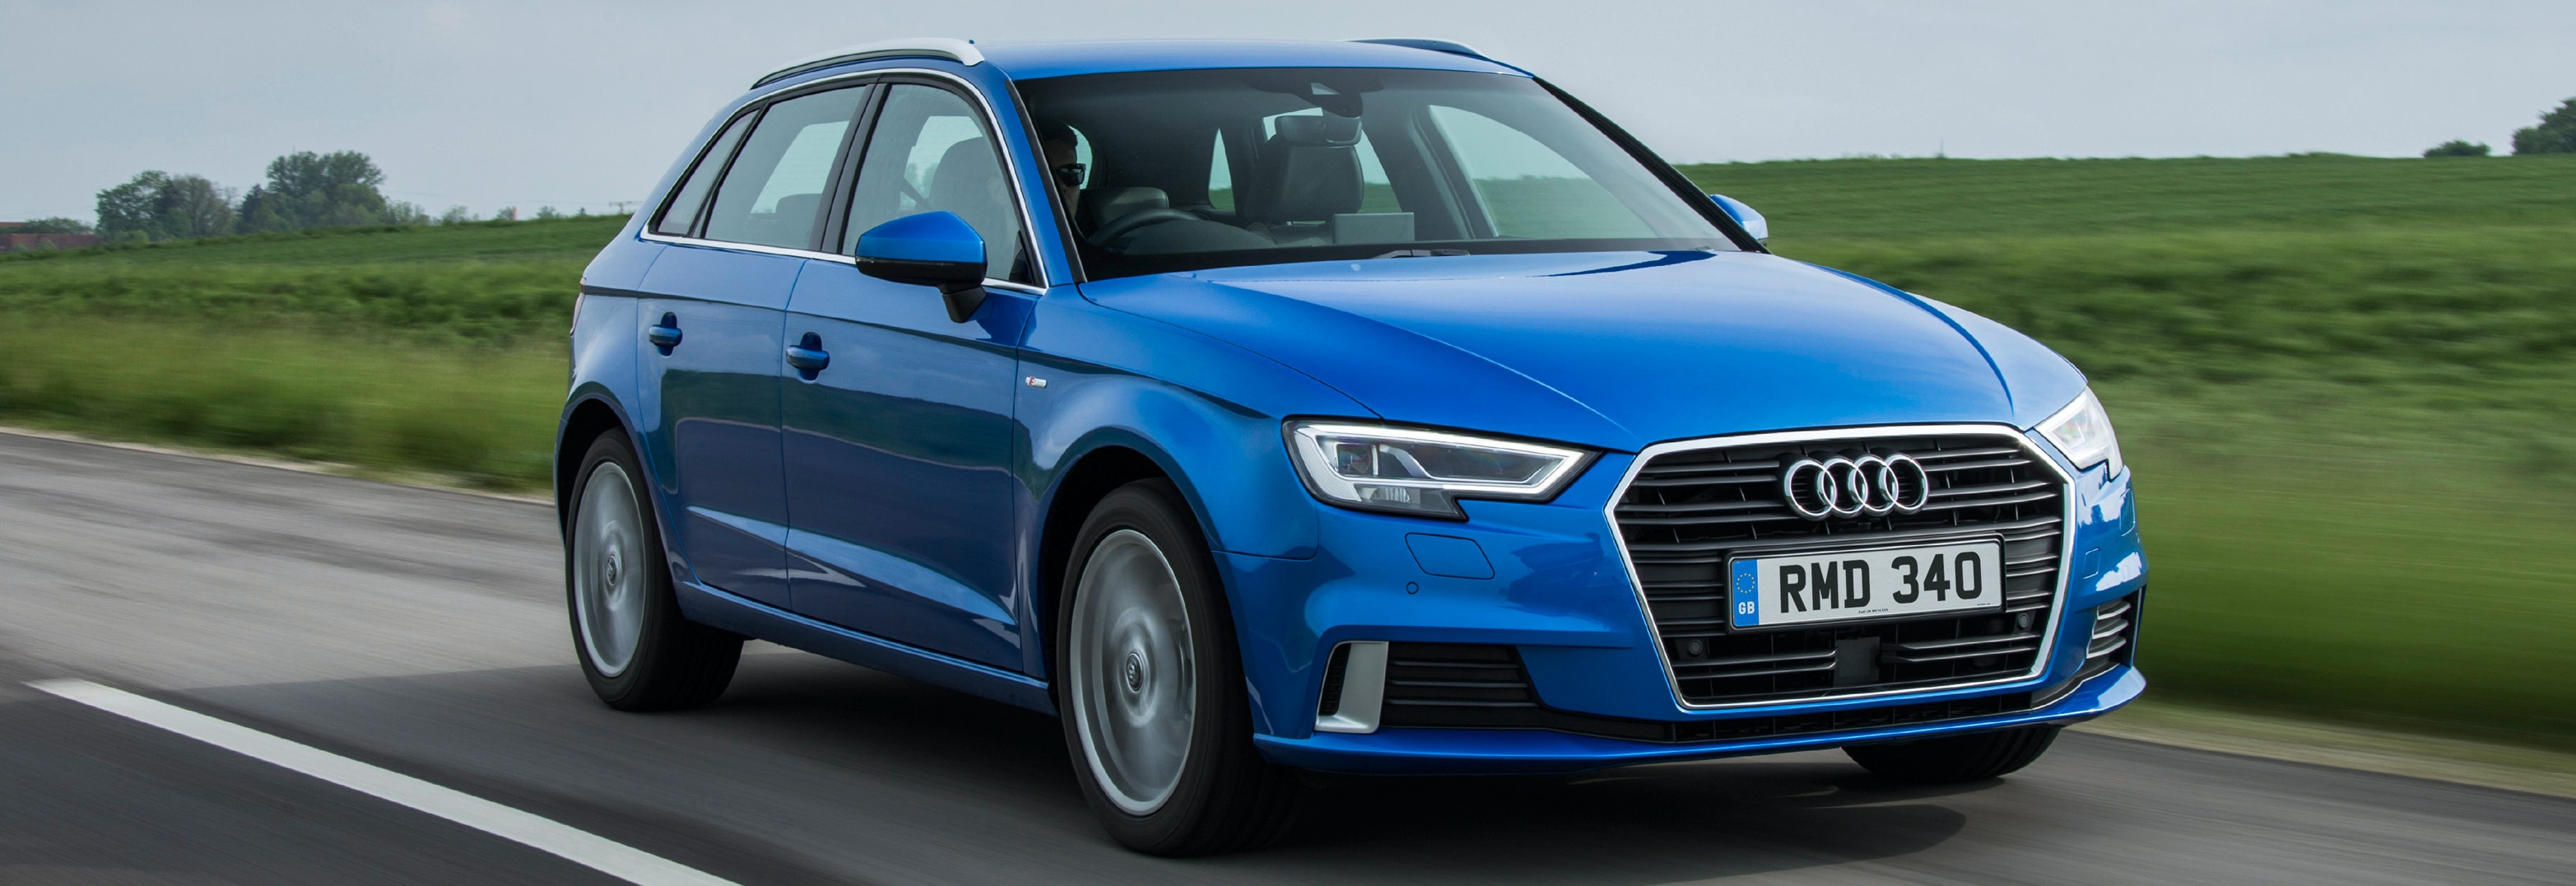 2018 audi a3 sportback blue driving front